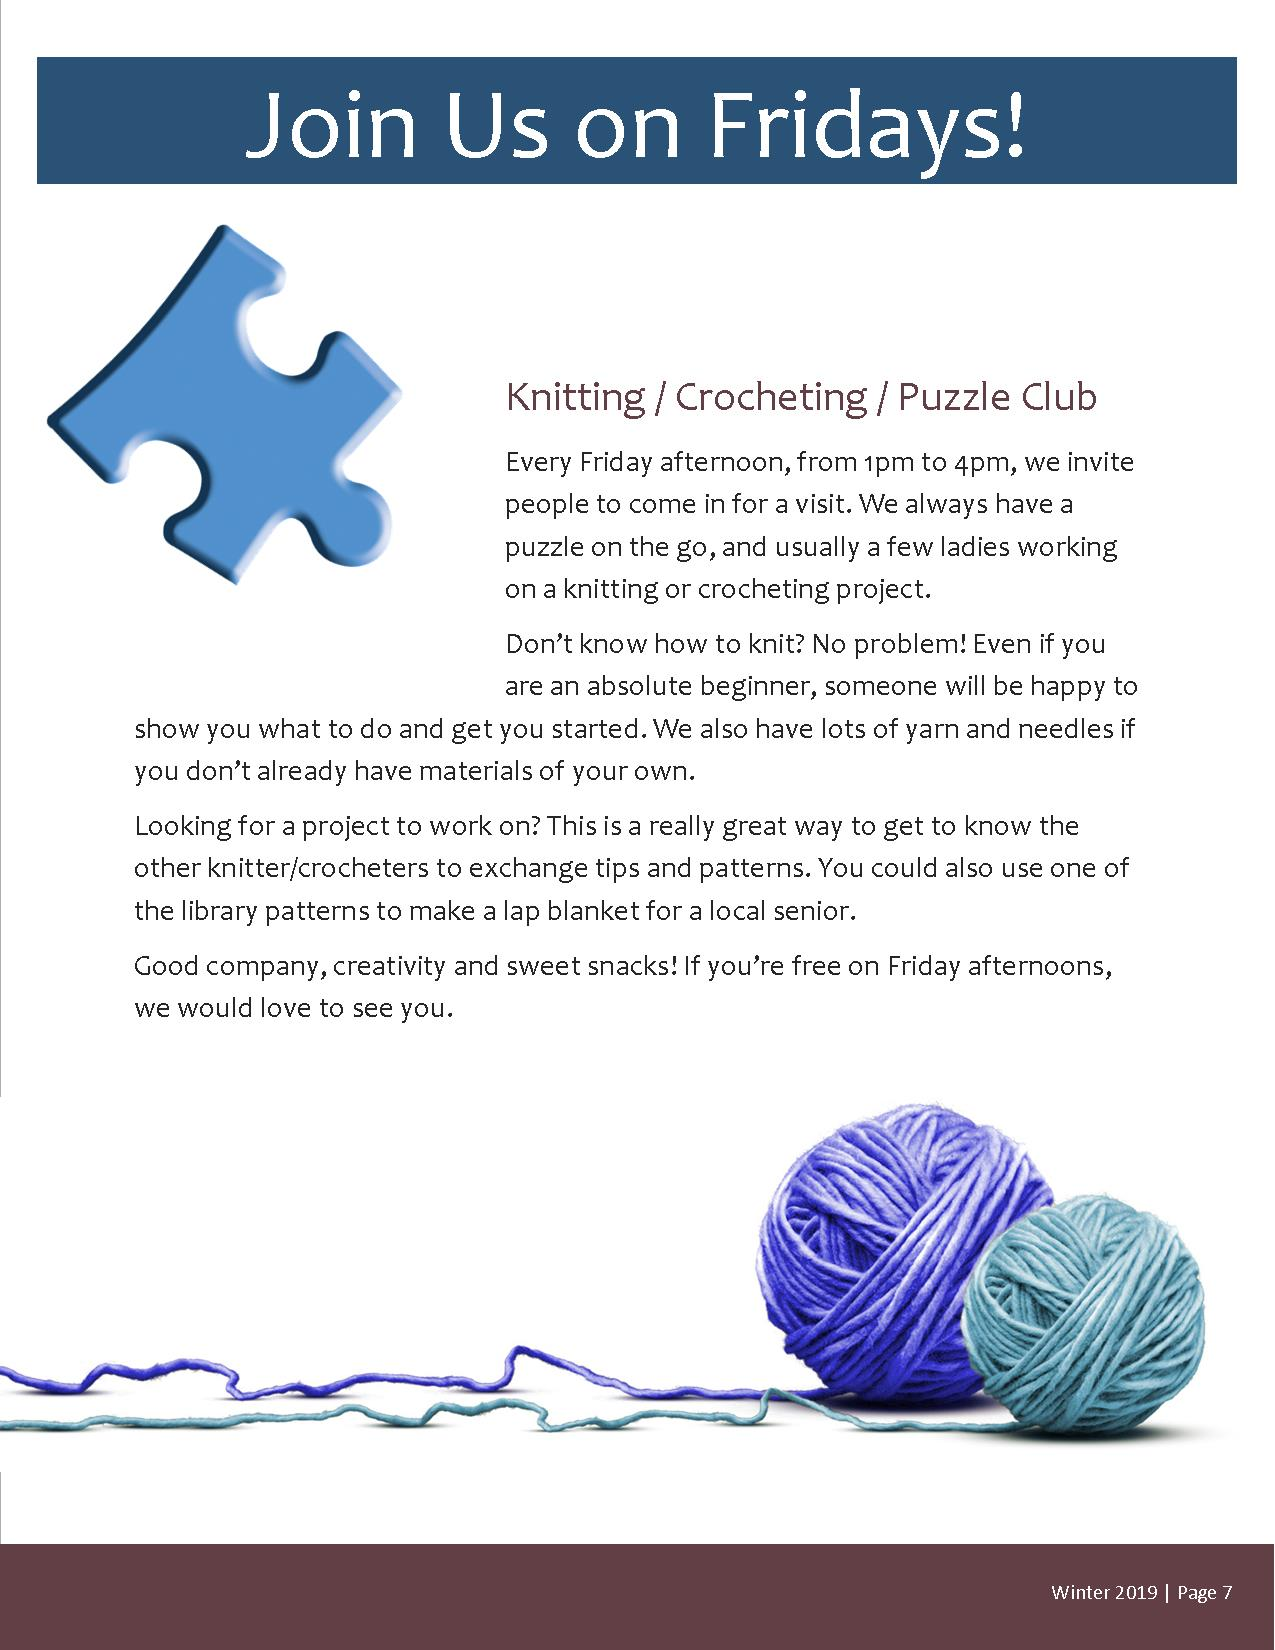 Knitting/Crocheting/Puzzle Club @ Magnetawan Community Centre